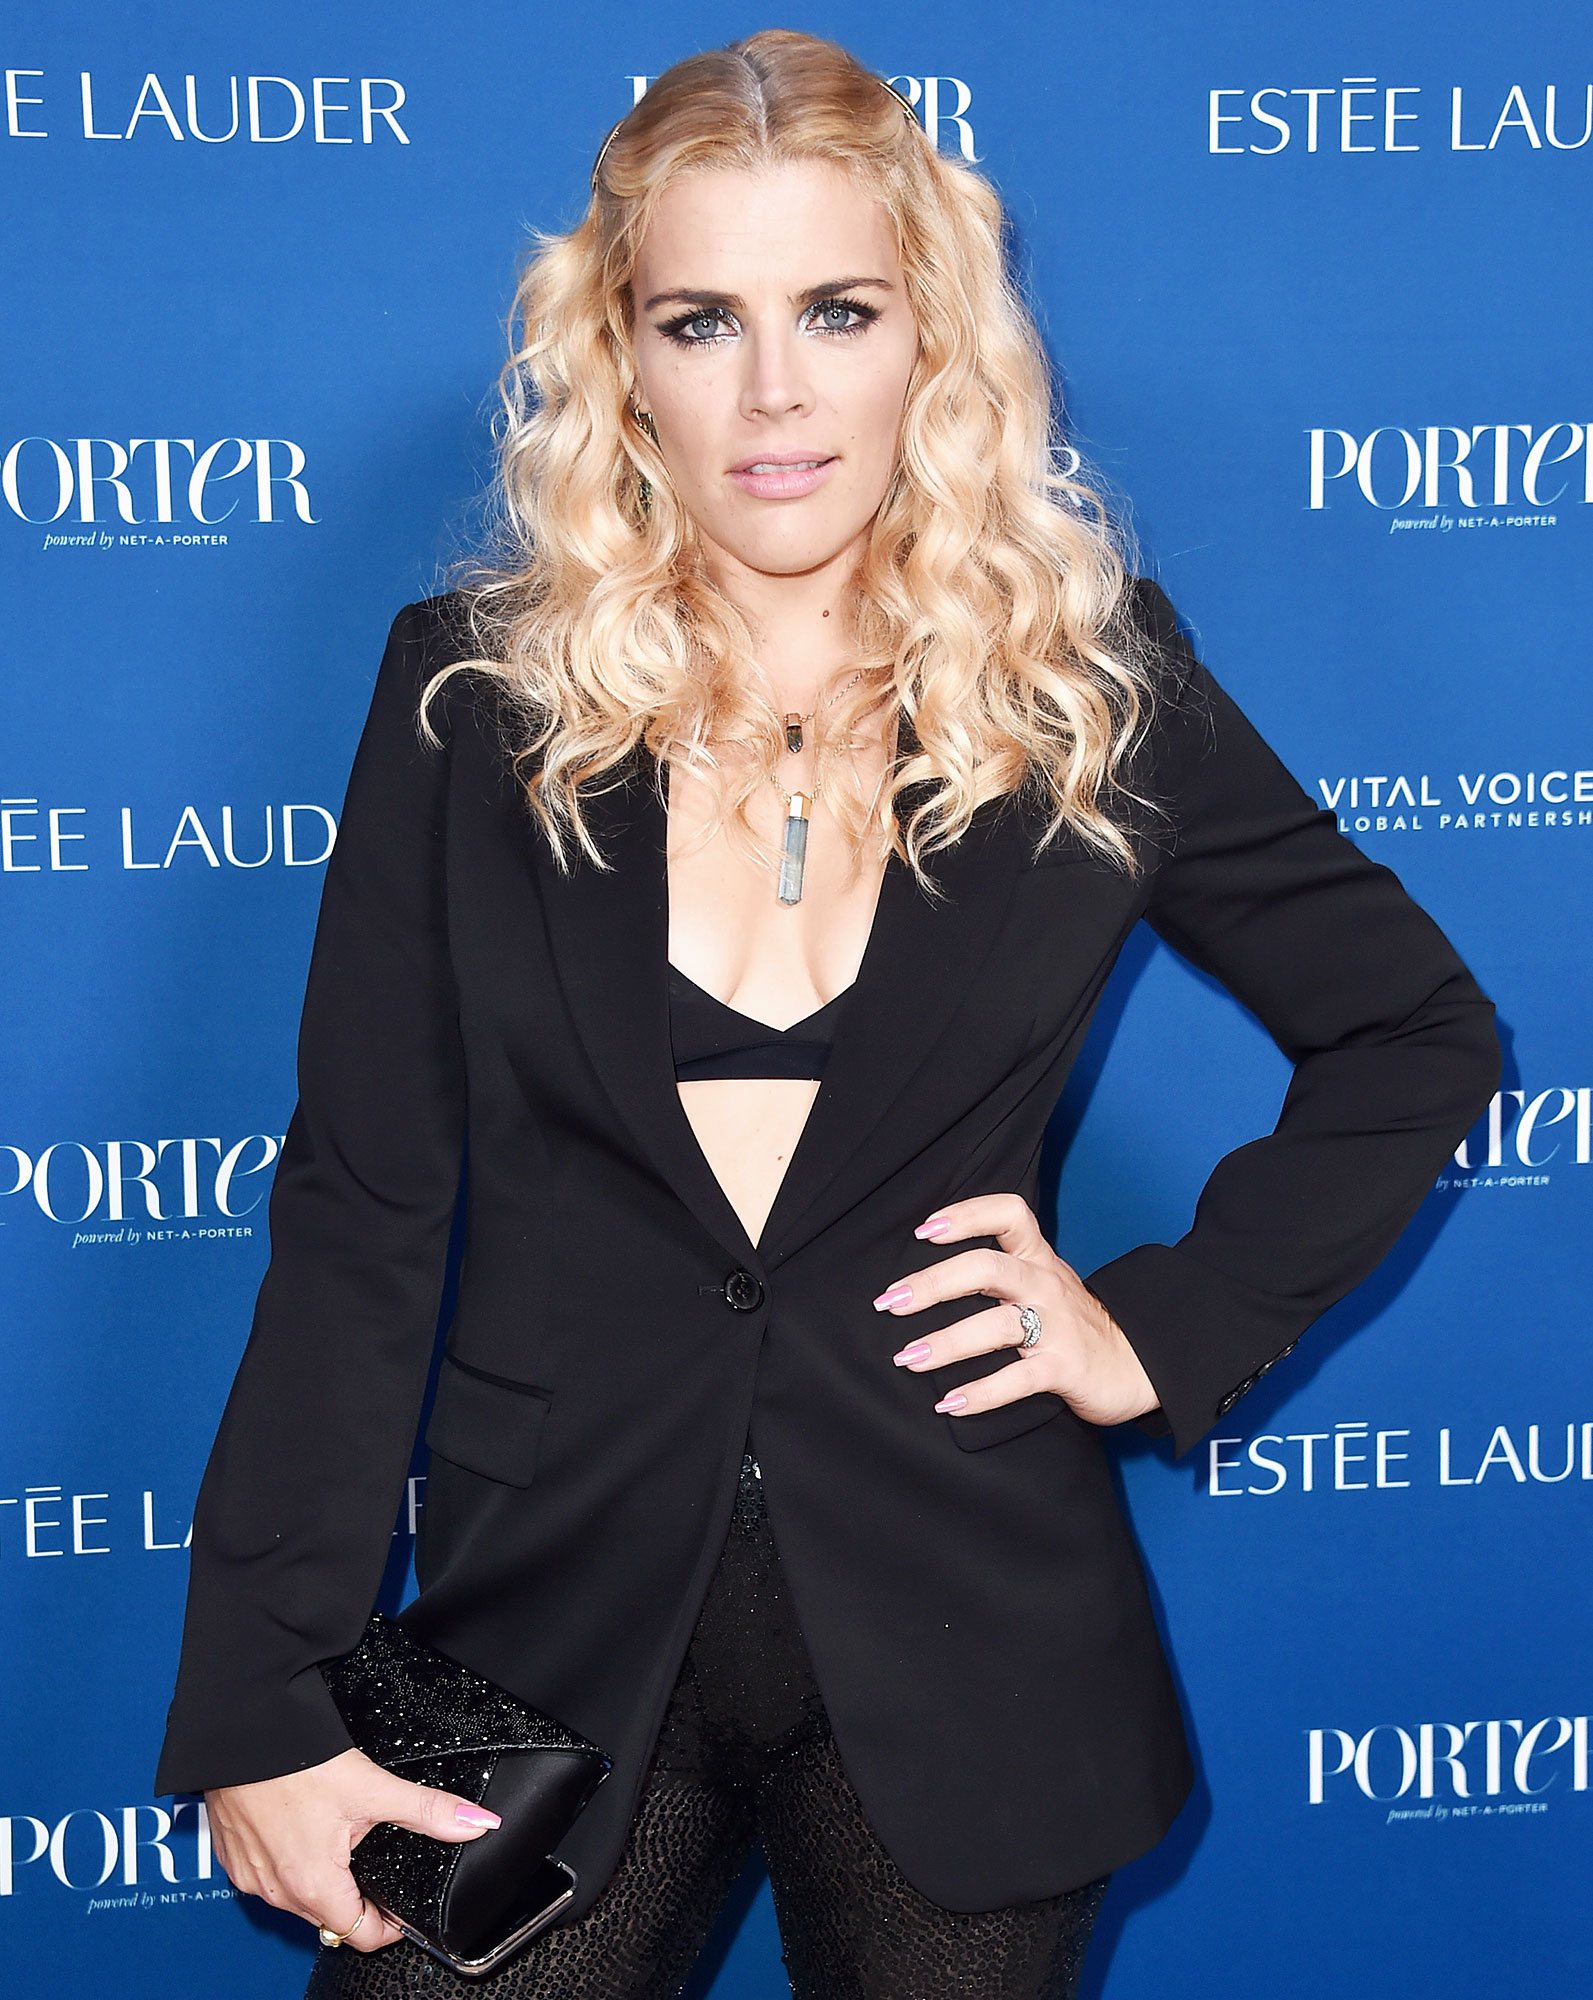 Busy Philipps Devastated Busy Tonight Cancelation - Busy Philipps attends PORTER's Third Annual Incredible Women Gala at The Ebell of Los Angeles on October 9, 2018.